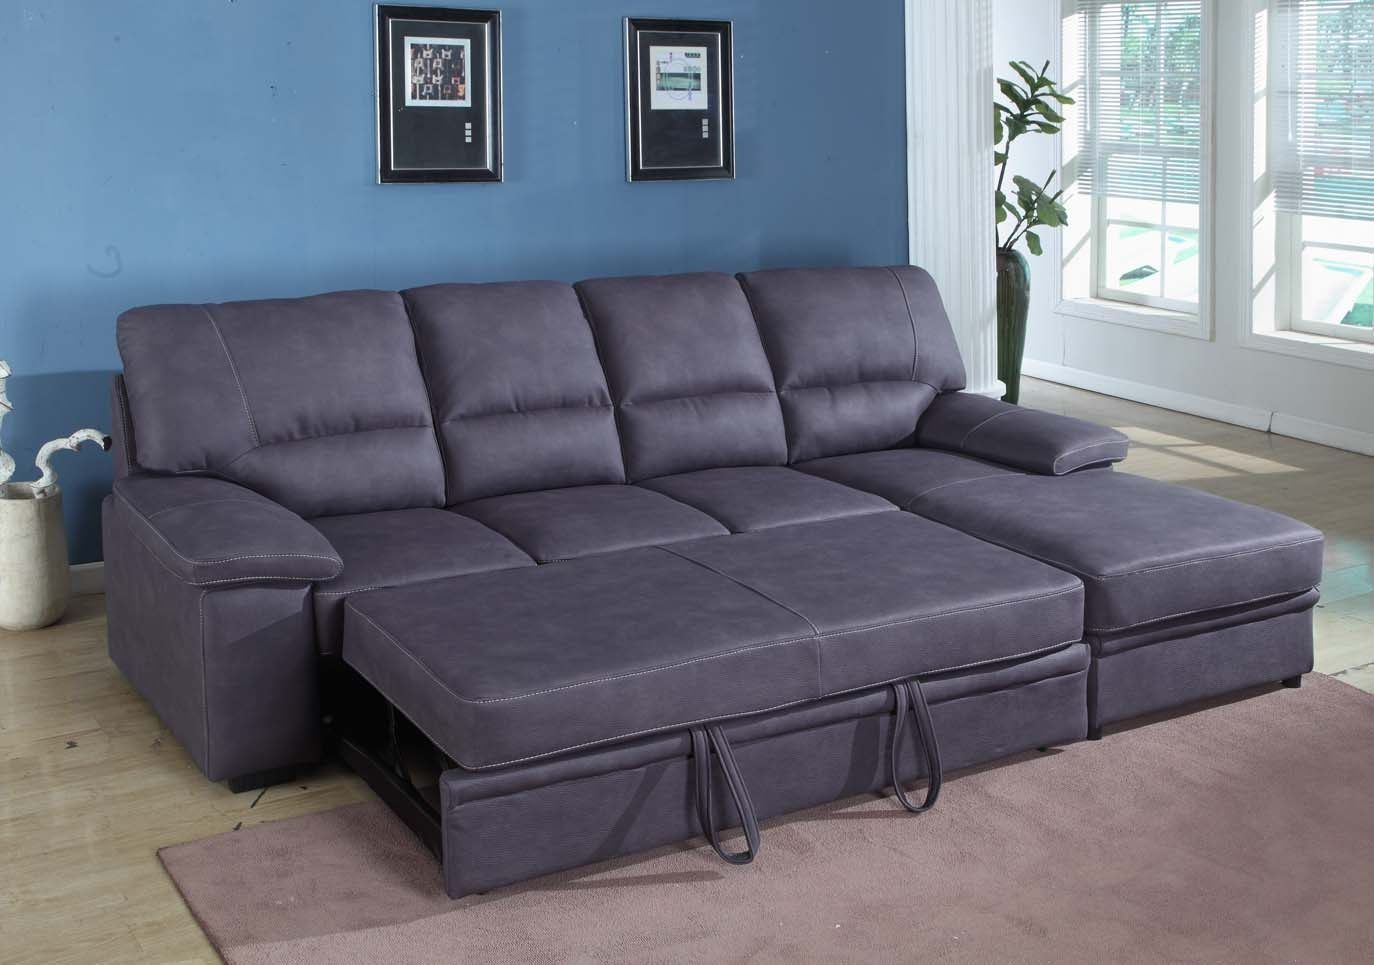 Awesome Sofas awesome comfy sectionals , fresh comfy sectionals 97 about remodel